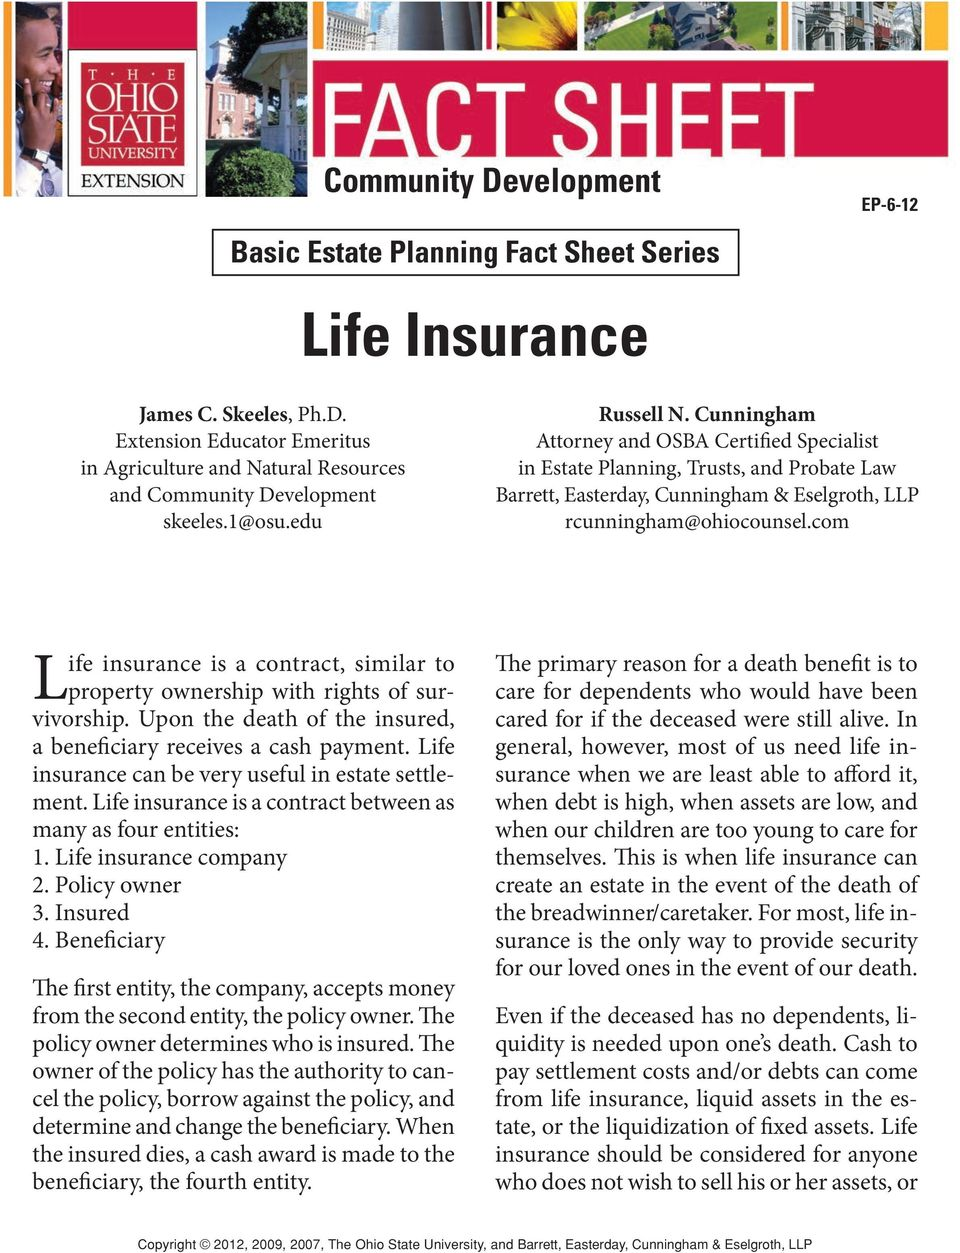 com Life insurance is a contract, similar to property ownership with rights of survivorship. Upon the death of the insured, a beneficiary receives a cash payment.